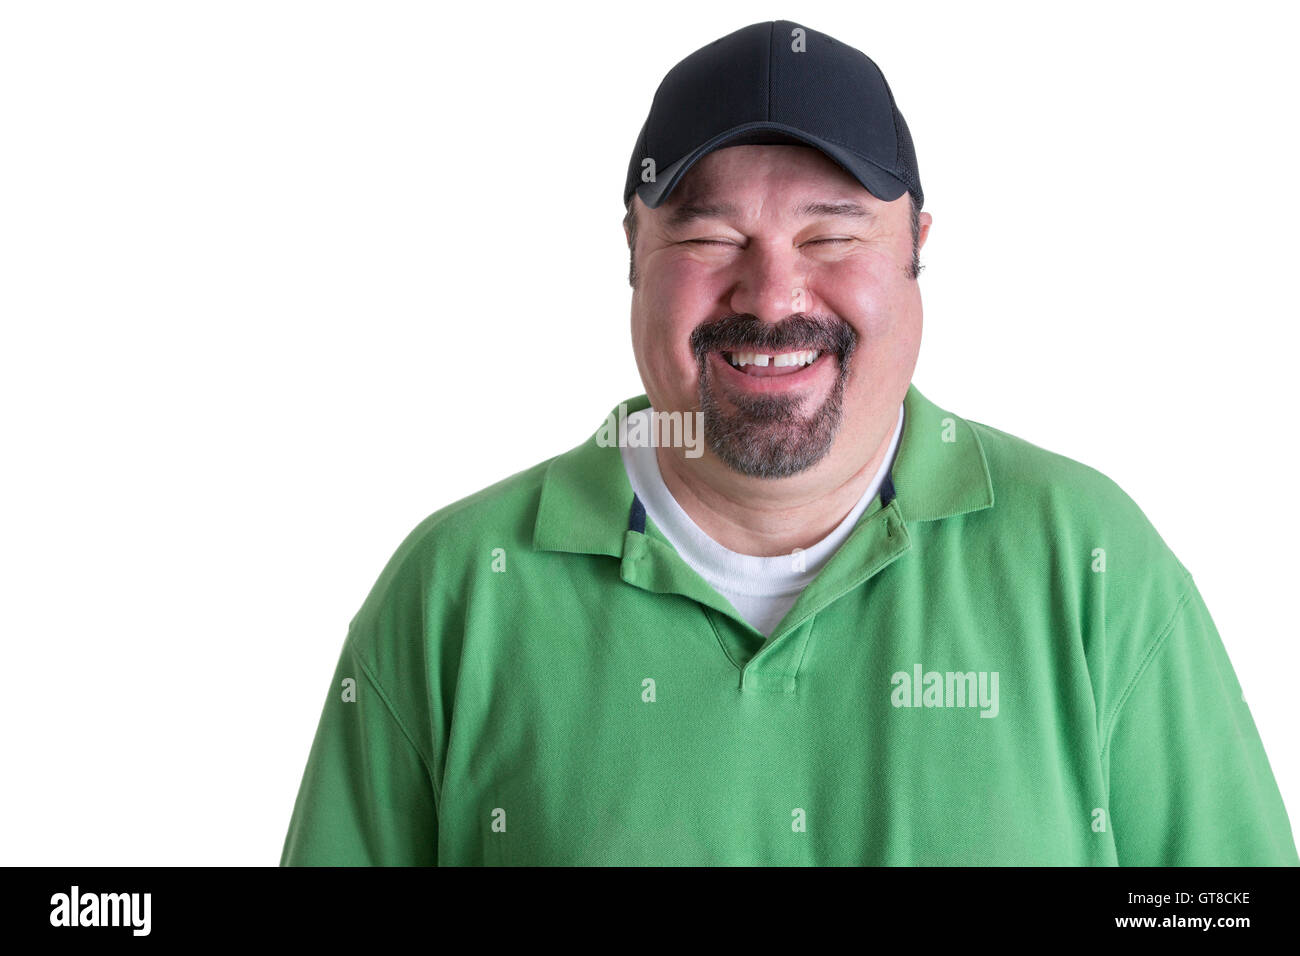 447e6467aee Portrait of Overweight Man Wearing Green Shirt and Black Baseball Cap  Laughing in front of White Background